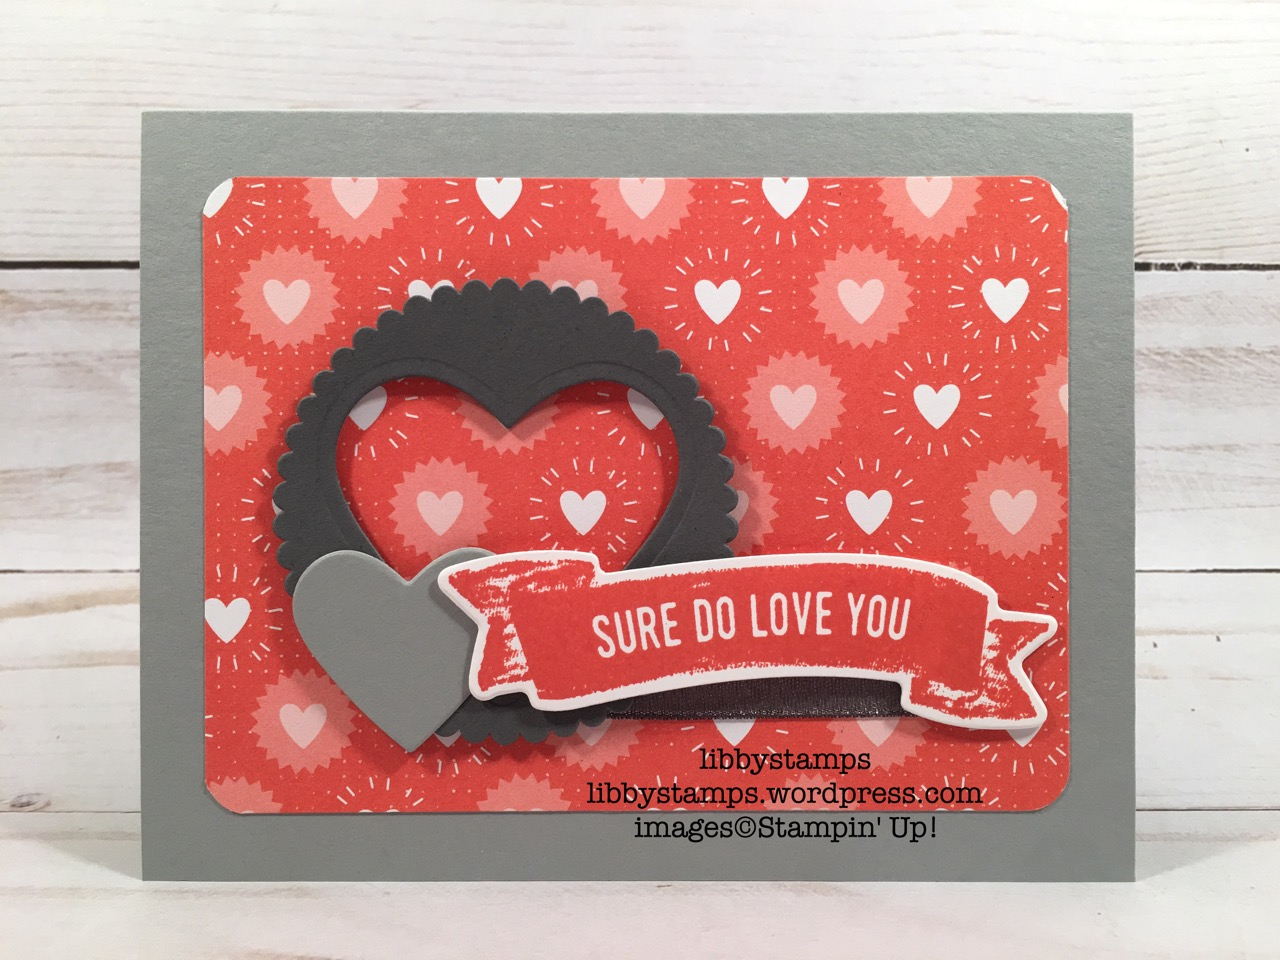 libbystamps, stampin up, TSOT, Sure Do Love You, Lots to Love Box Framelits, Sure Do Love You Bundle, Layering Circles Framelits, Sweet & Sassy Framelits, Bubbles & Fizz DSP, Sale-a-Bration 2018